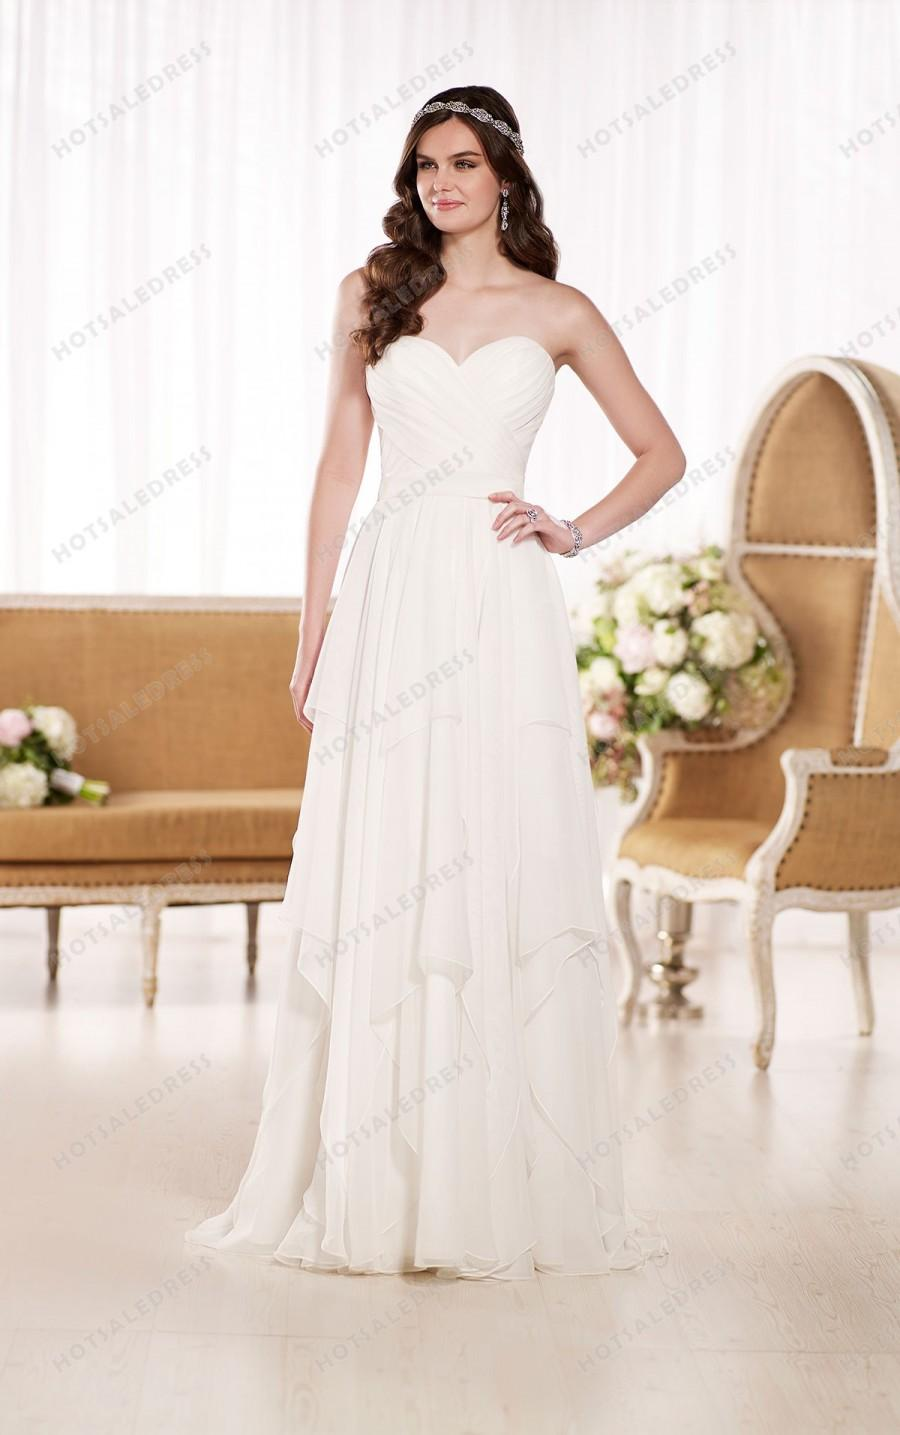 Essense Of Australia Simple Wedding Gowns Style D1799 #2367846 ...